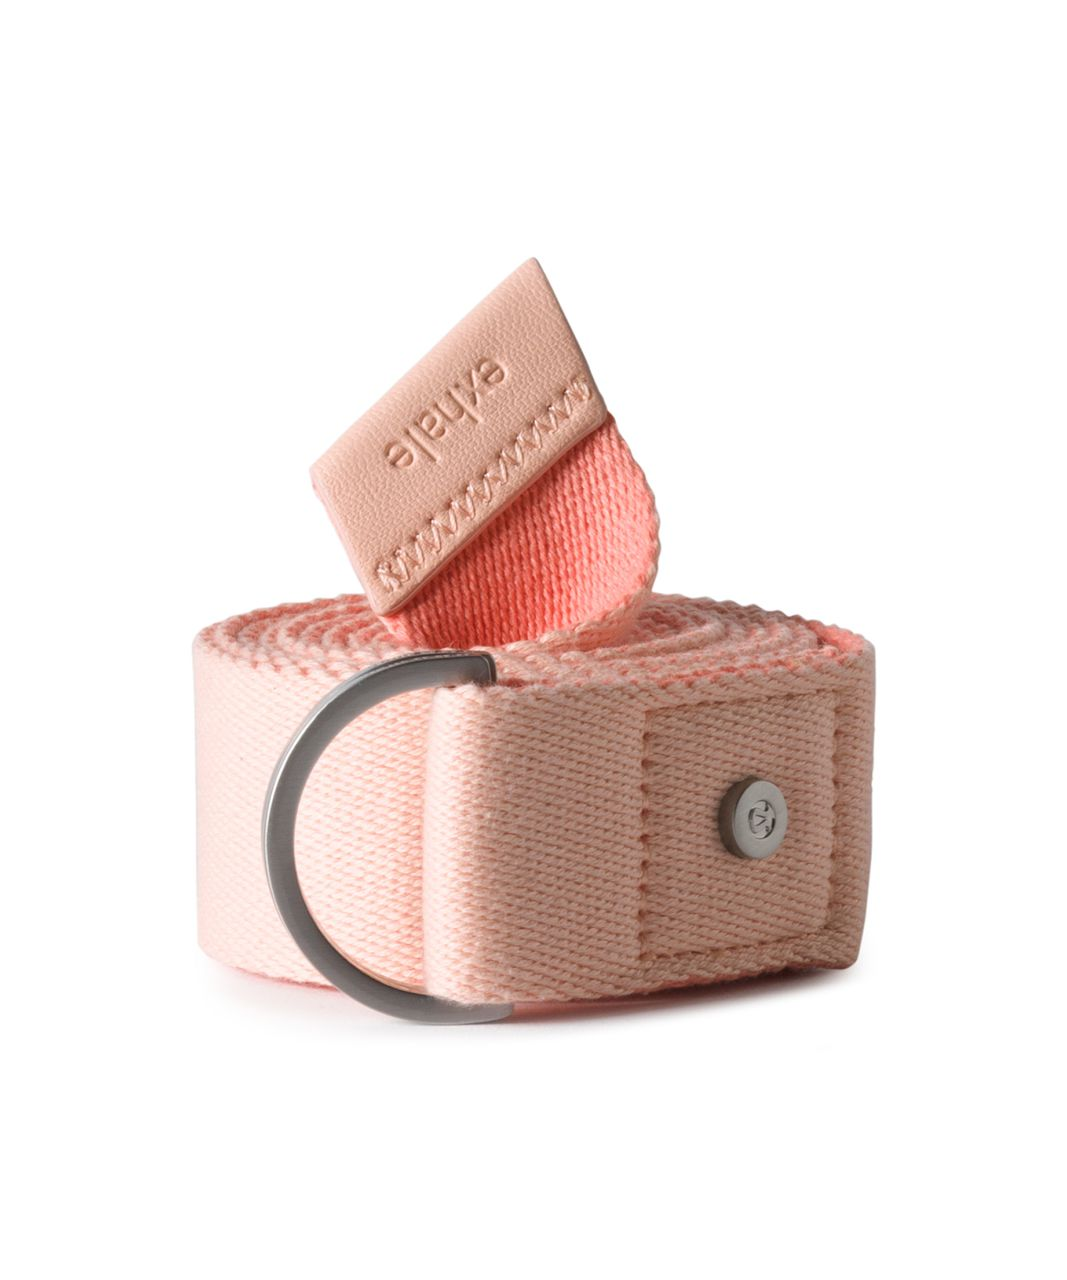 Lululemon No Limits Stretching Strap - Pink Sorbet / Sunny Coral